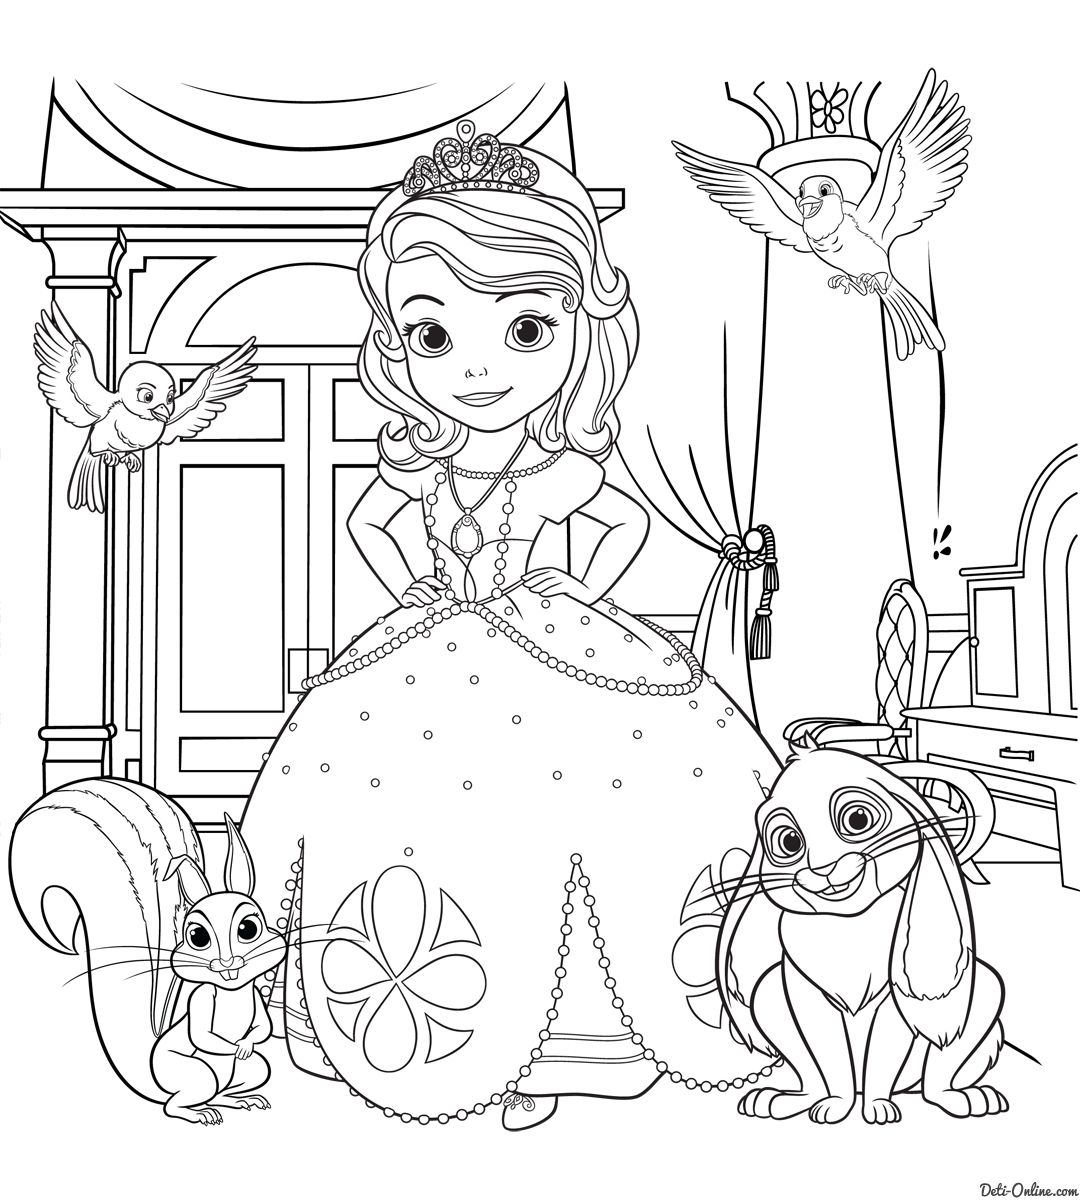 Whitman hot wheels coloring book - Explore Coloring And More